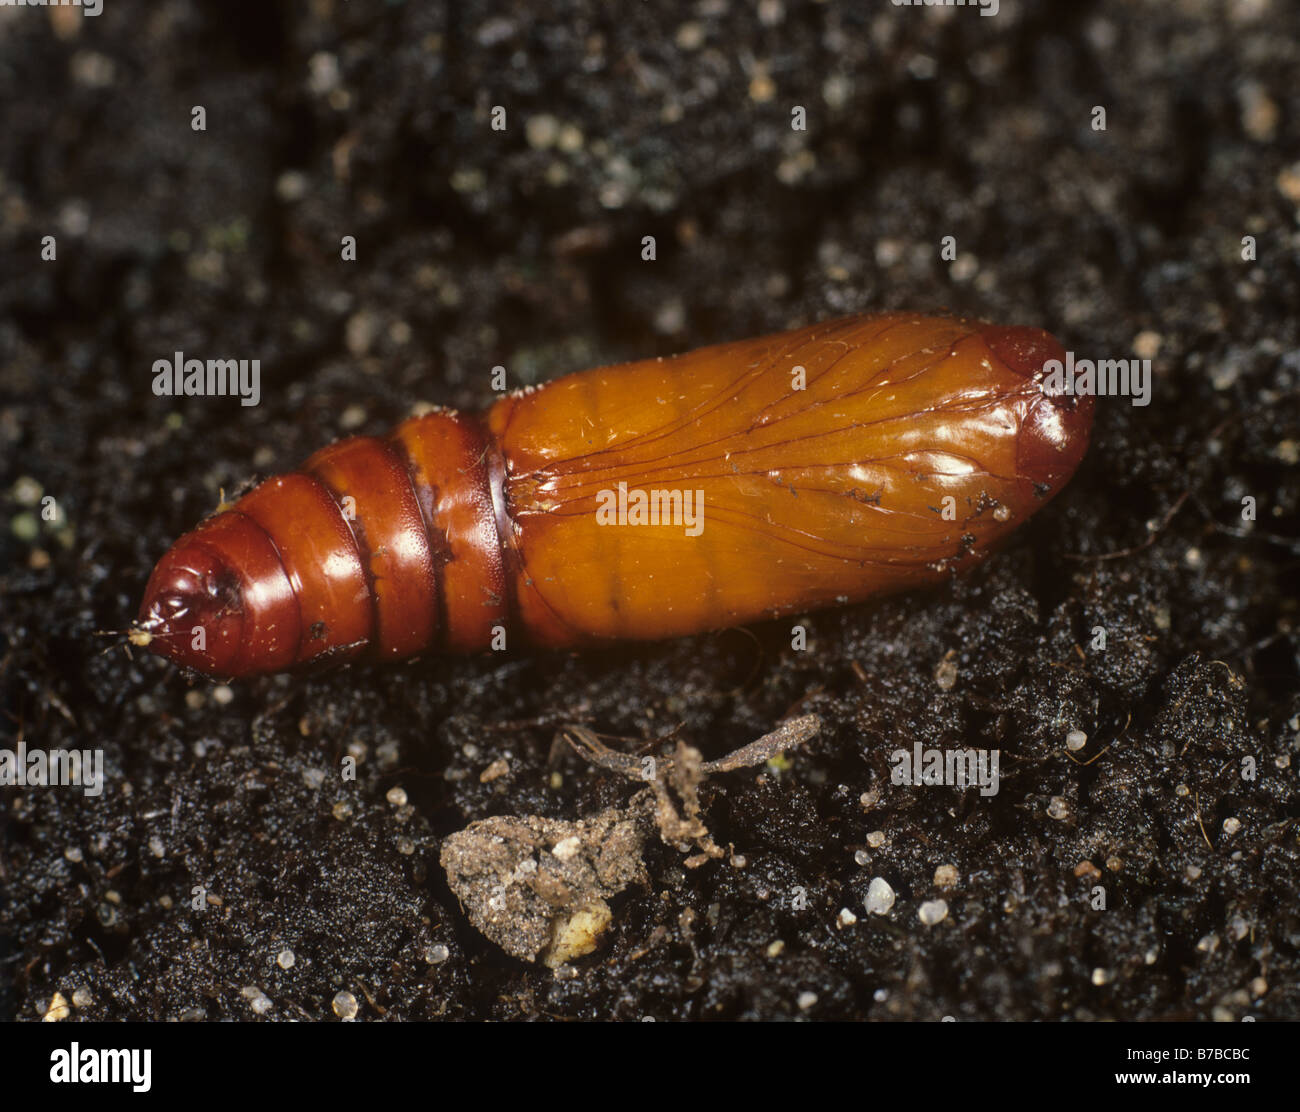 American bollworm Helicoverpa armigera pupa on soil - Stock Image